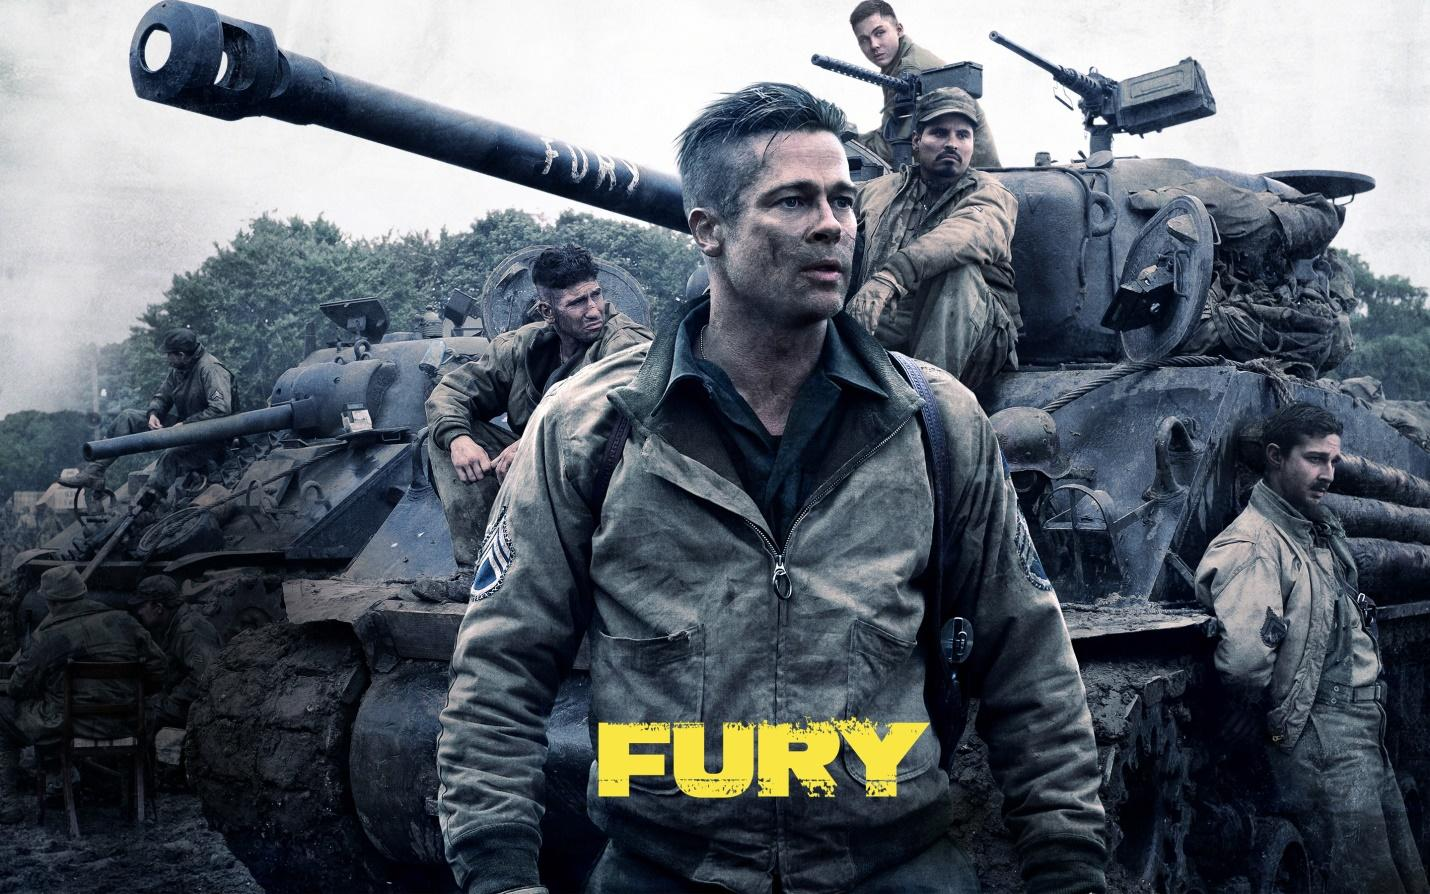 http://www.hdwallpapers.in/walls/fury_movie-wide.jpg